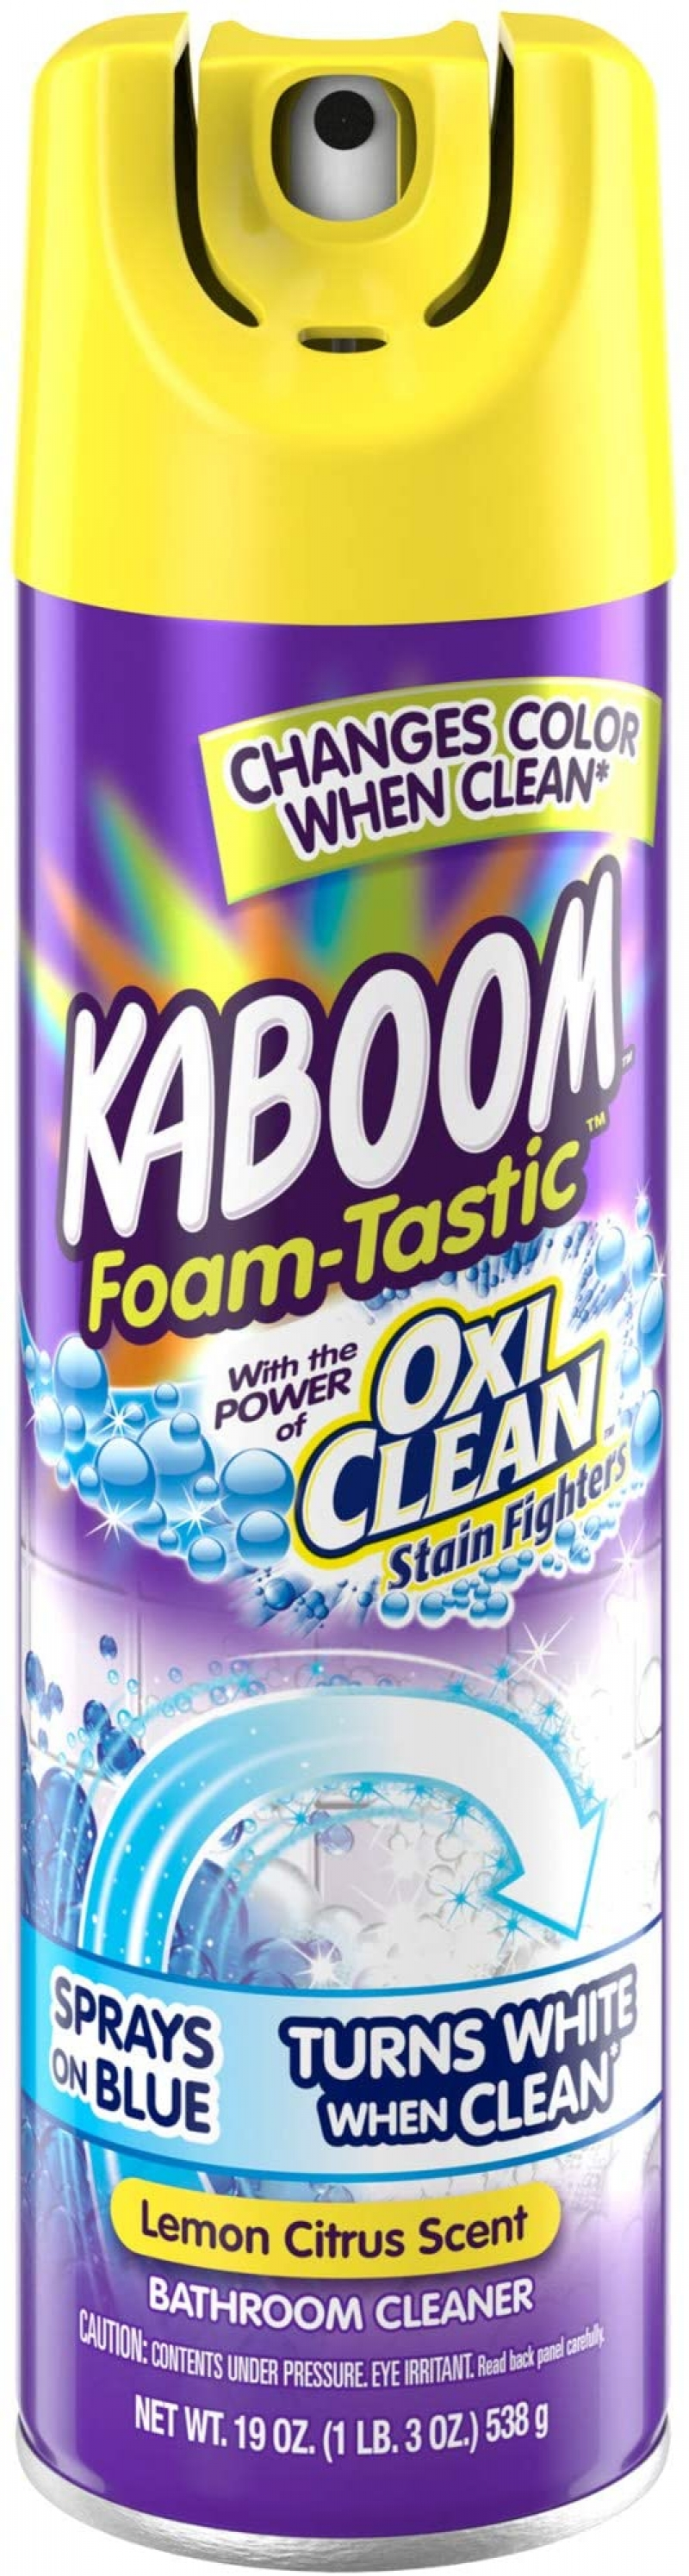 ihocon: Kaboom Foam Tastic Bathroom Cleaner with OxiClean, Citrus 19oz 泡沫式浴室清潔劑